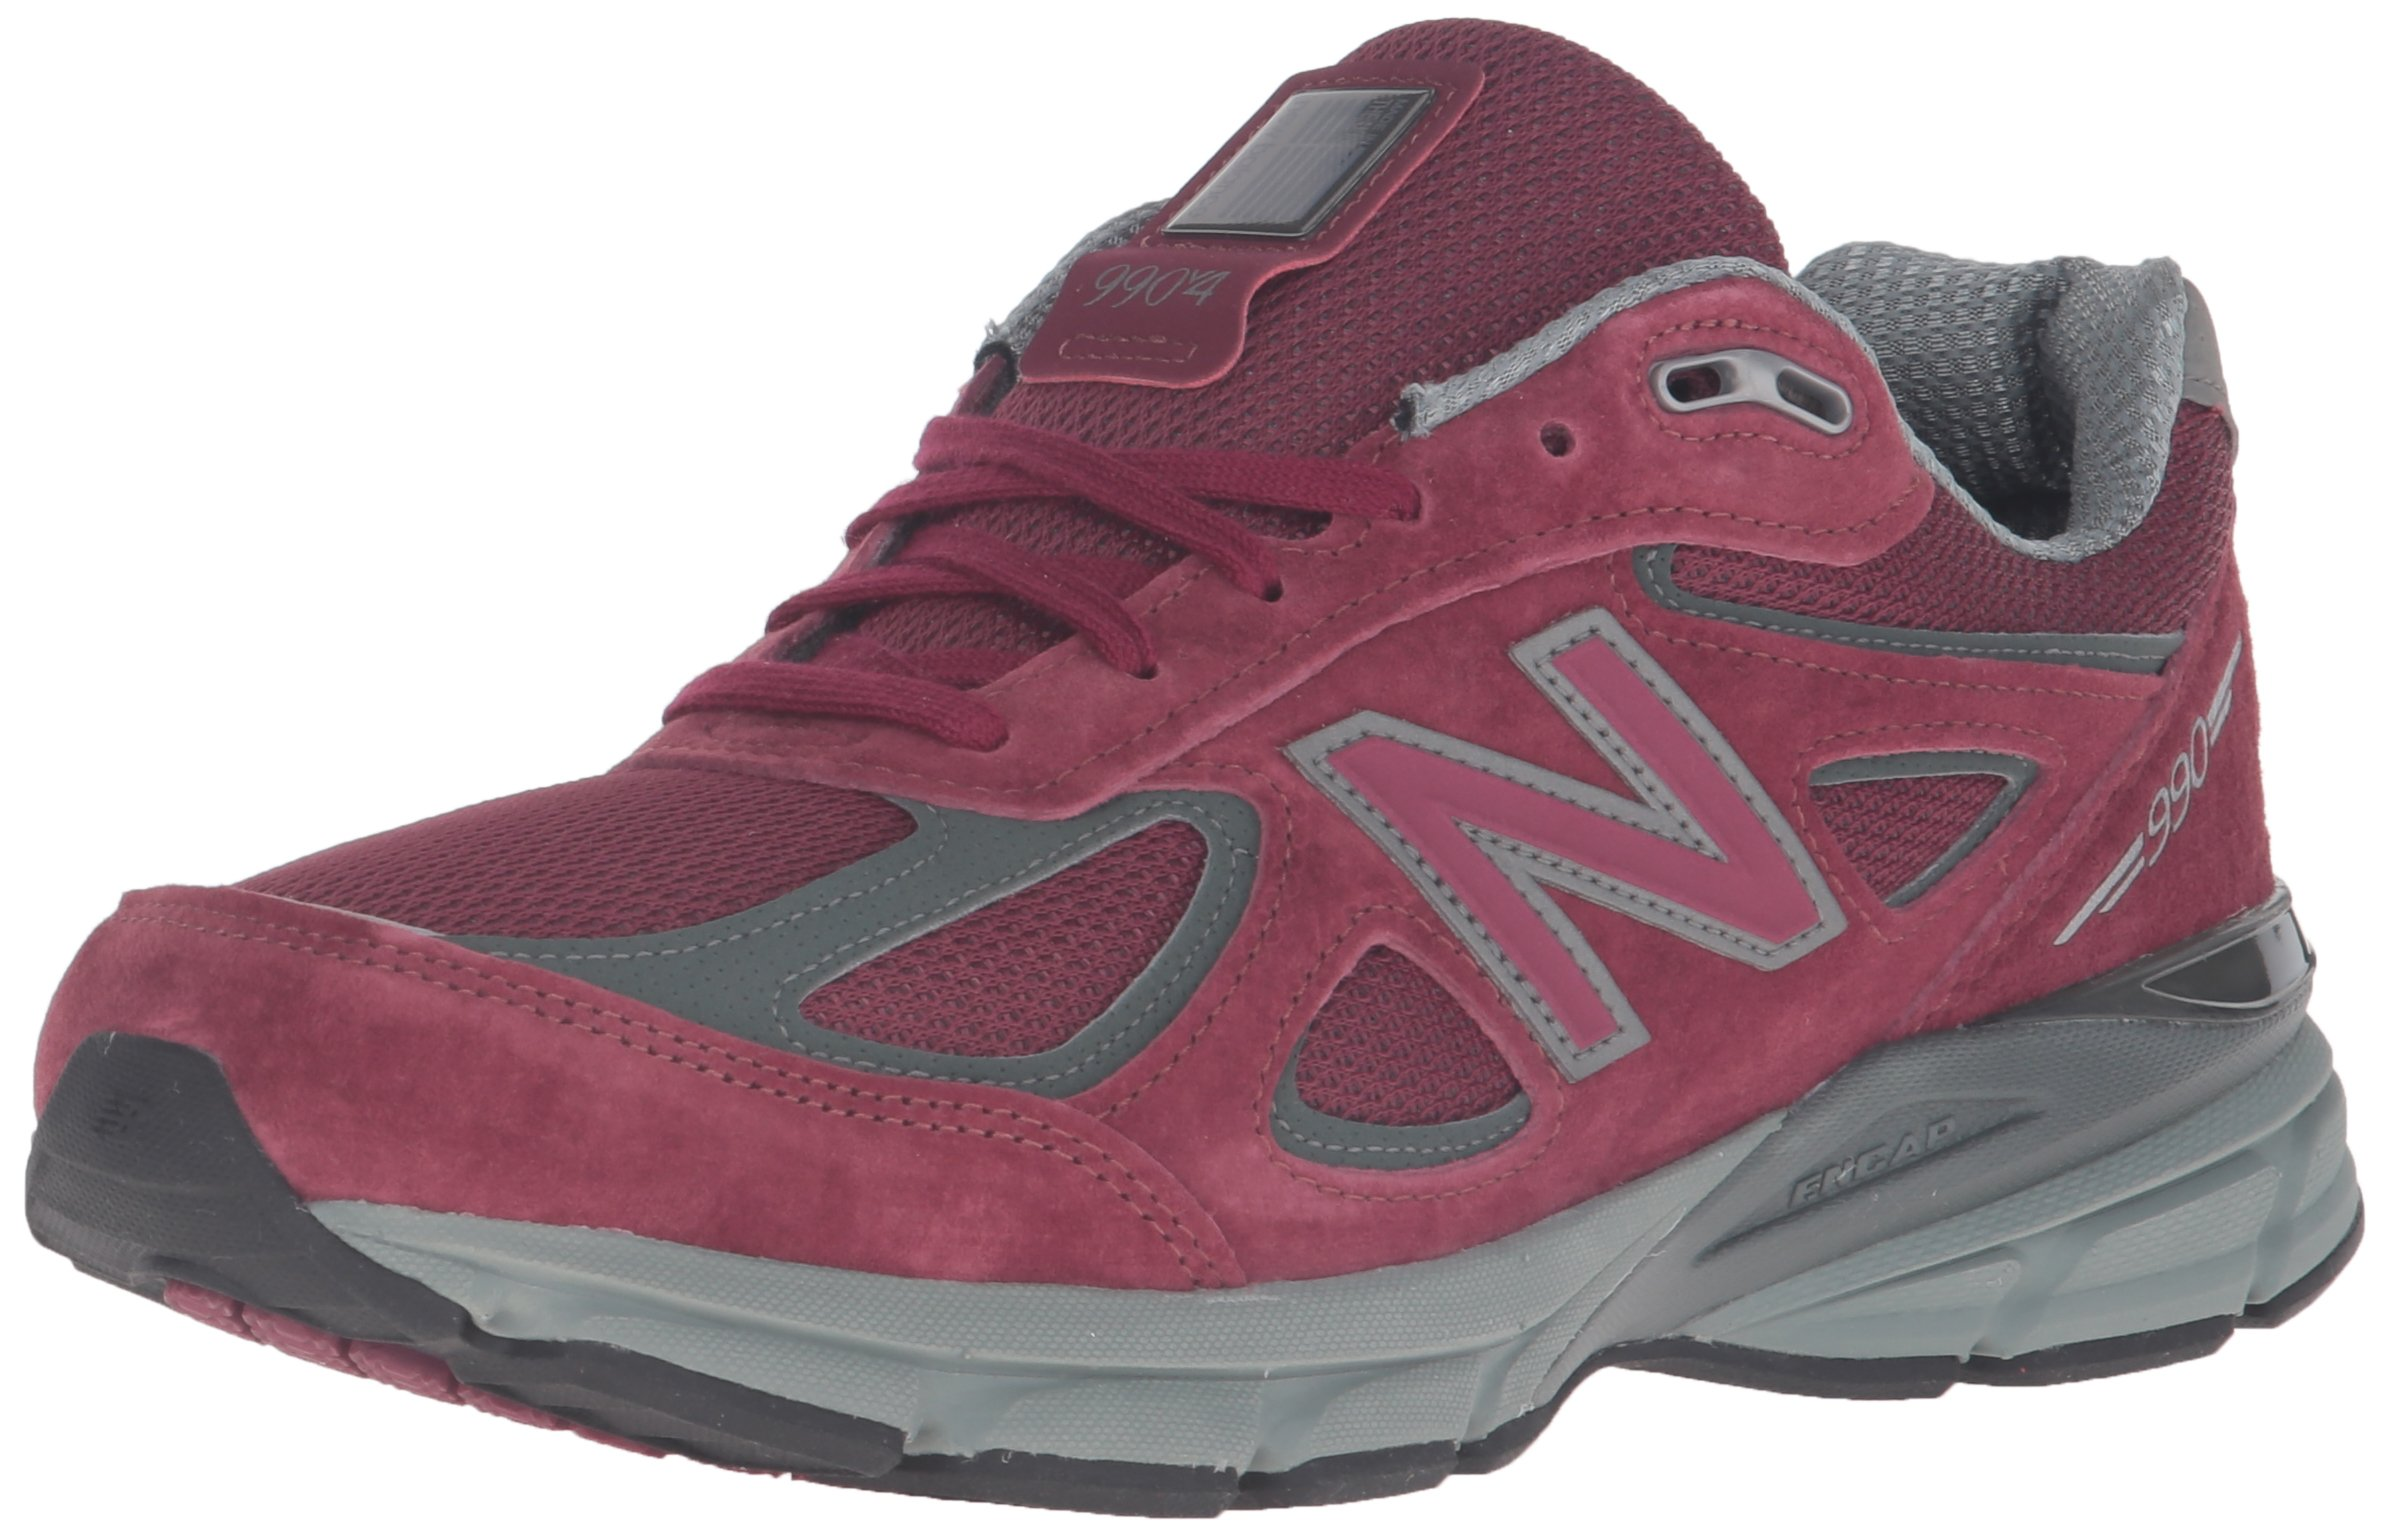 New Balance Men's M990BU4 Running Shoe,Burgundy,13 D US